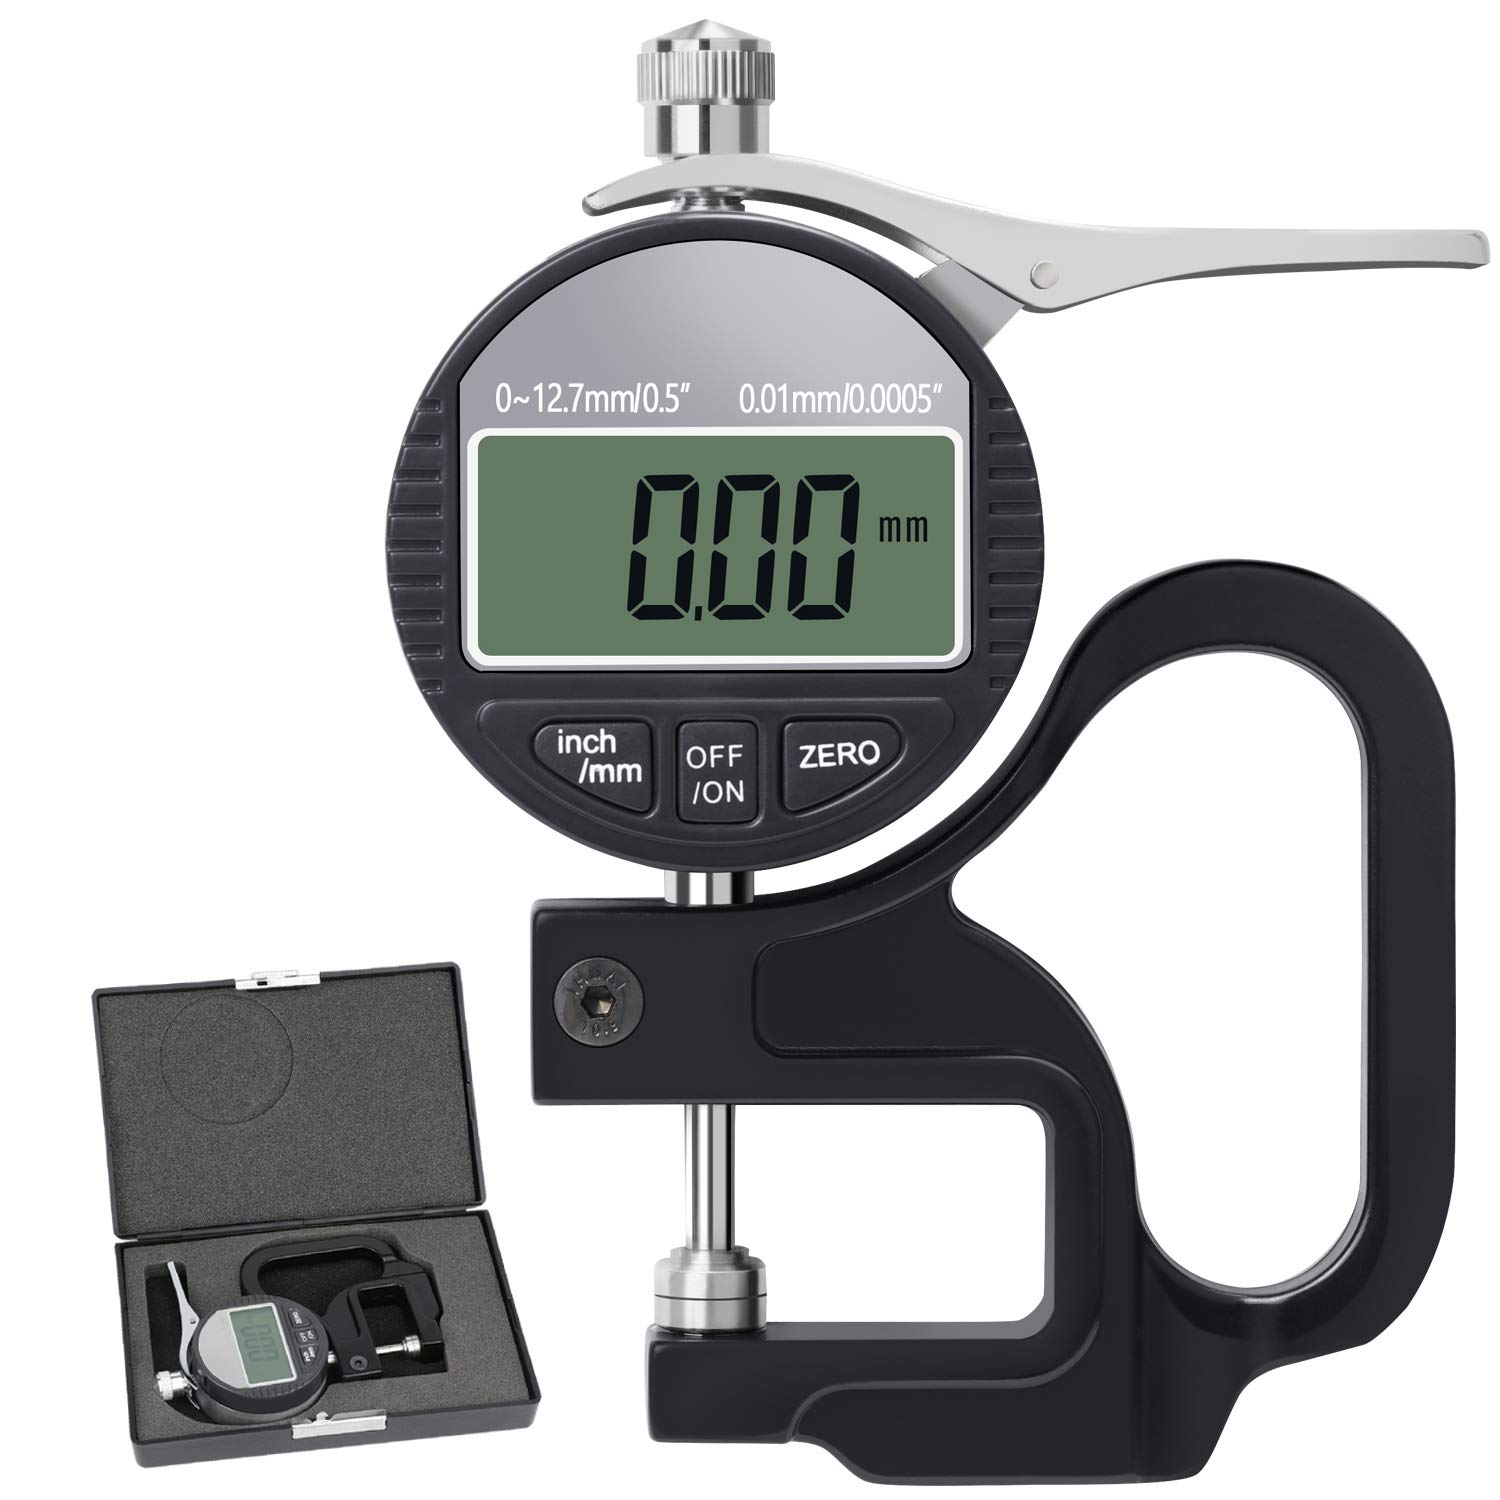 BNISE Digital Thickness Gauge 0.5 0.01mm T Max 53% OFF Limited time sale inch 0.0005